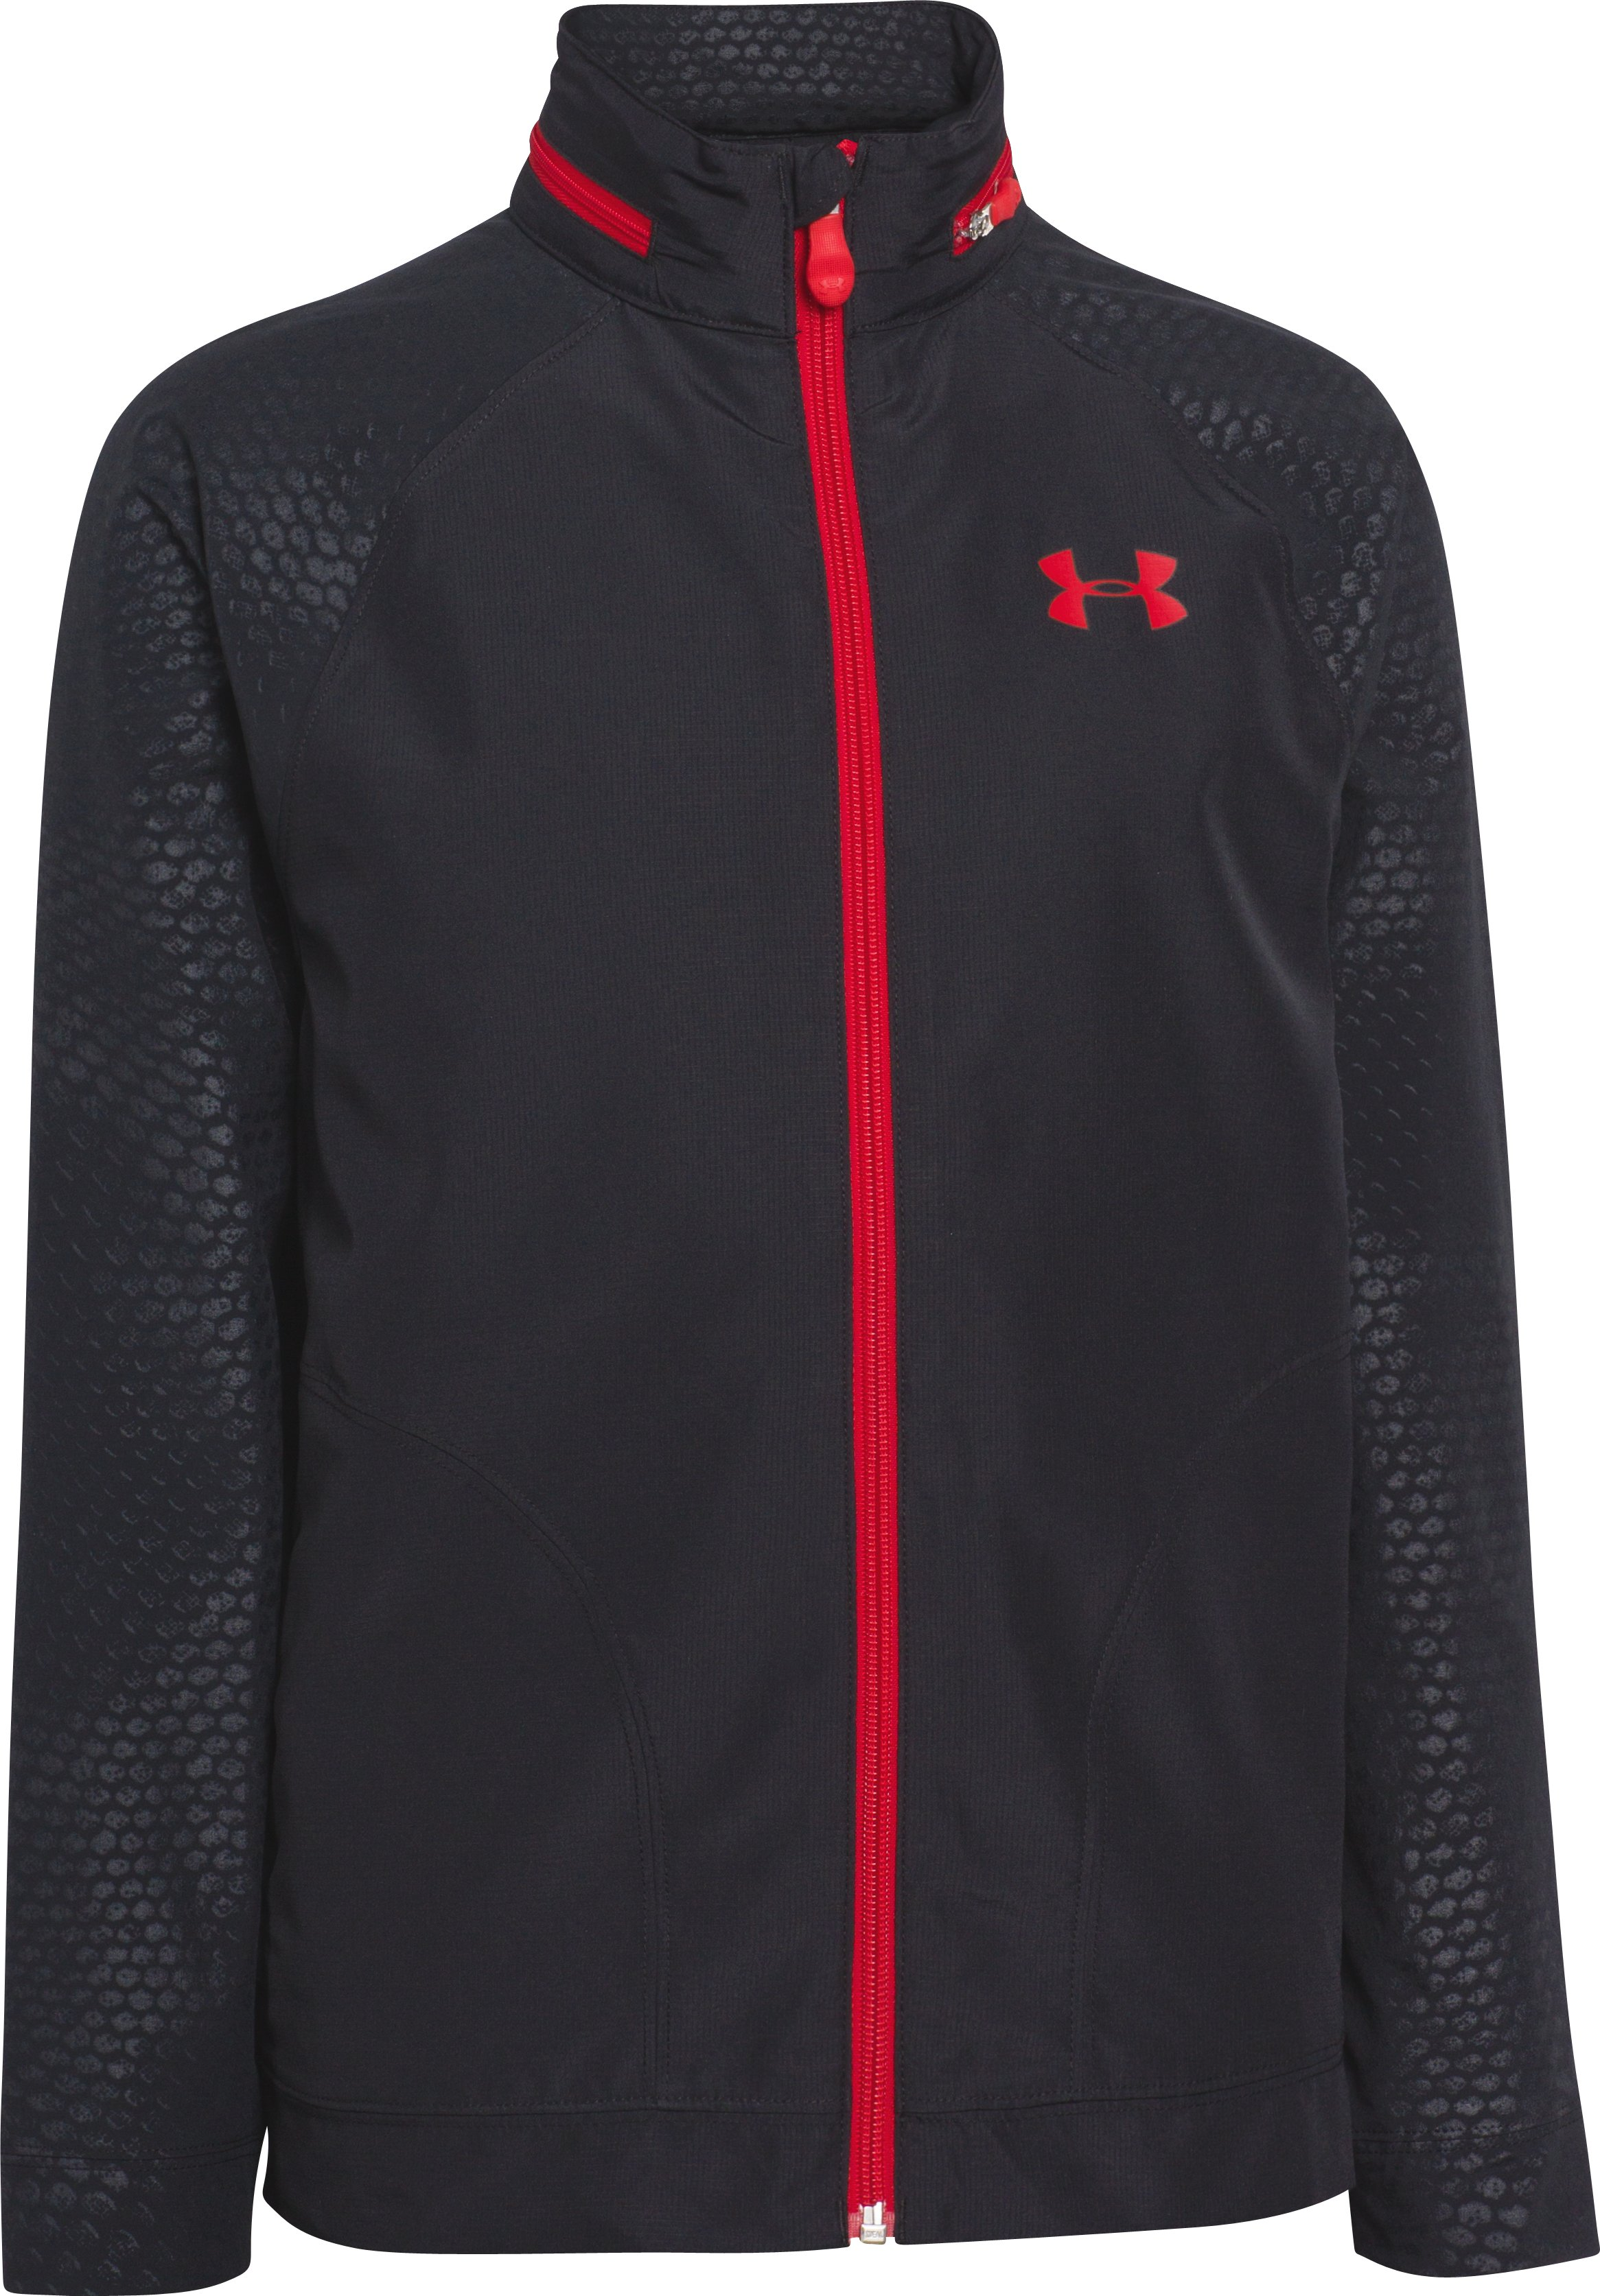 Boys' UA Front9 Wind Jacket, Black